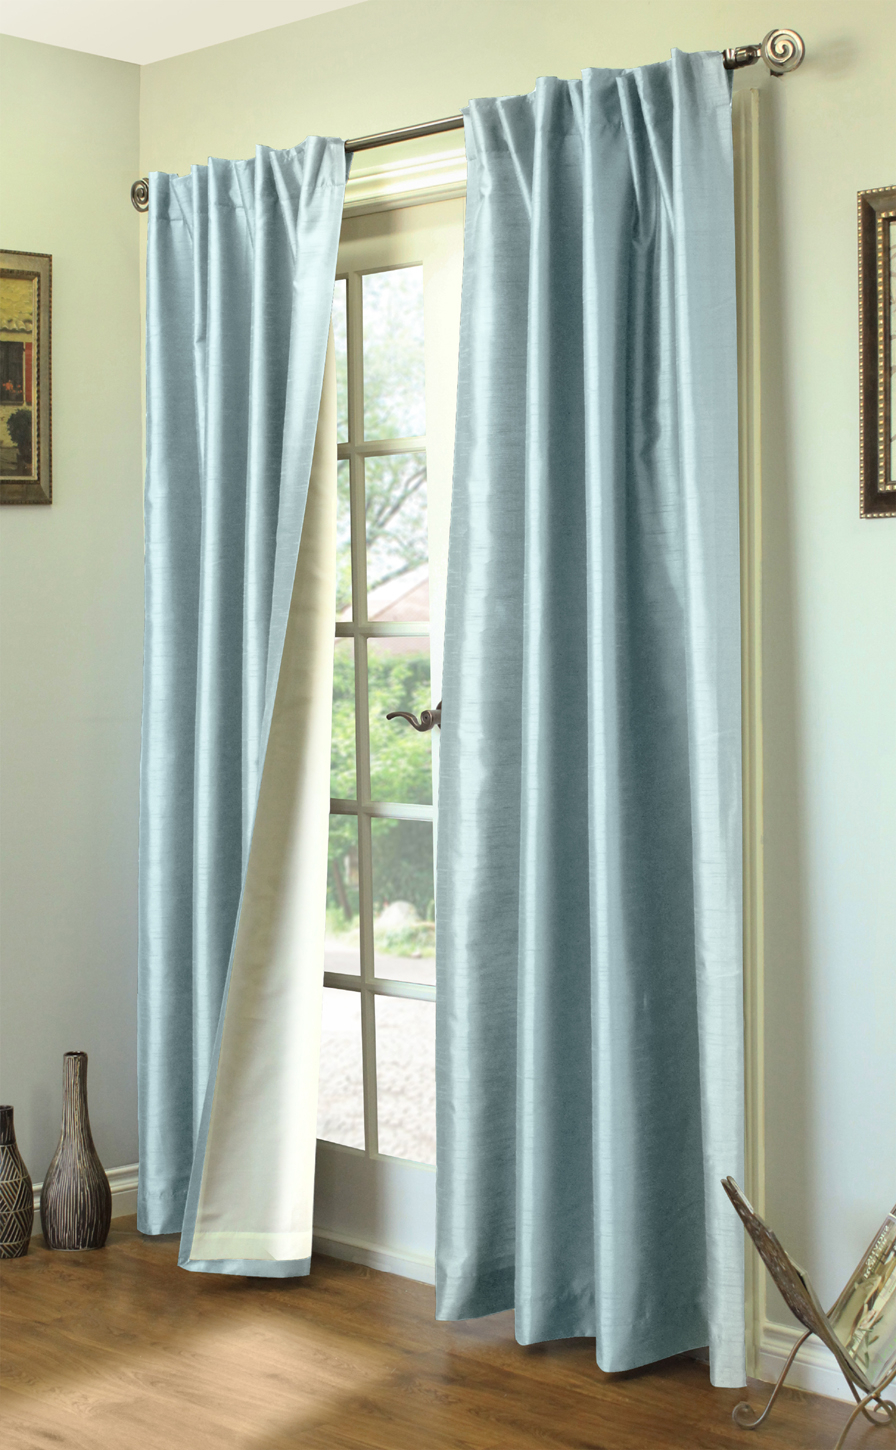 Ming Lined Thermasilk – Two Ways To Hang Curtain Panels (pair) With Regard To Curtain Panel Pairs (View 2 of 20)